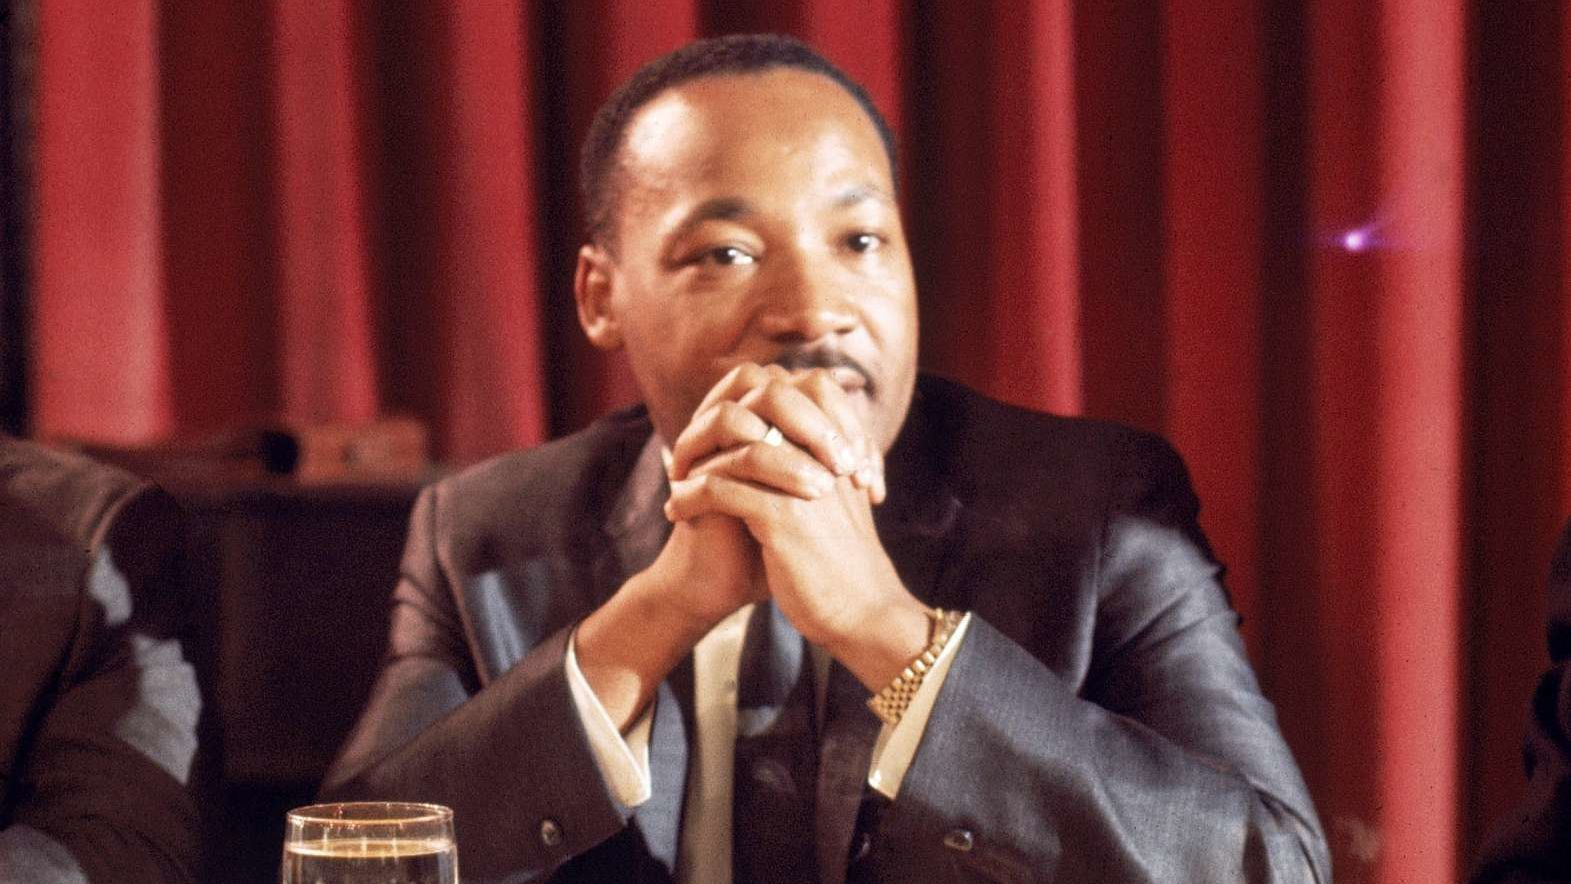 The 1958 Assassination Attempt That Left Martin Luther King Jr. a Single Sneeze Away From Death